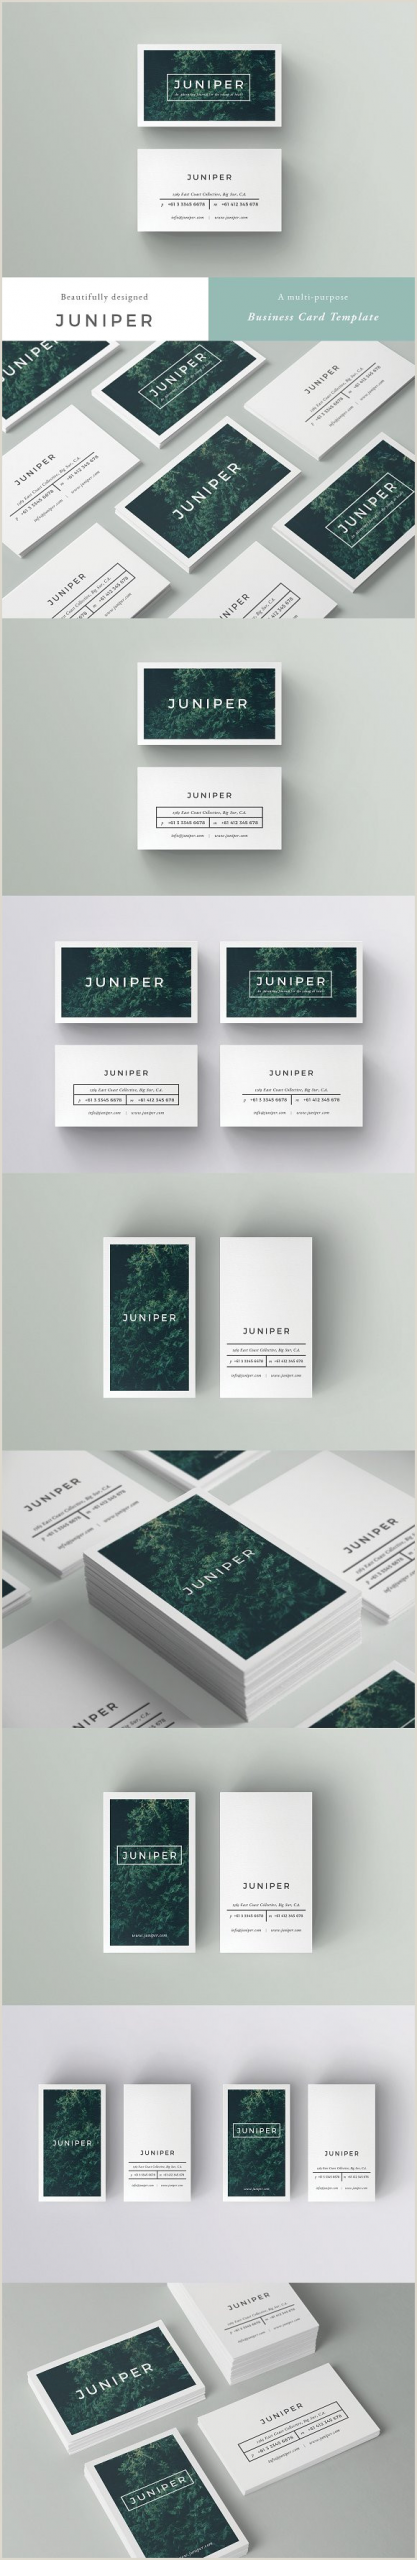 Minimalist Business Cards 20 Clean And Minimal Business Cards That Stand Out